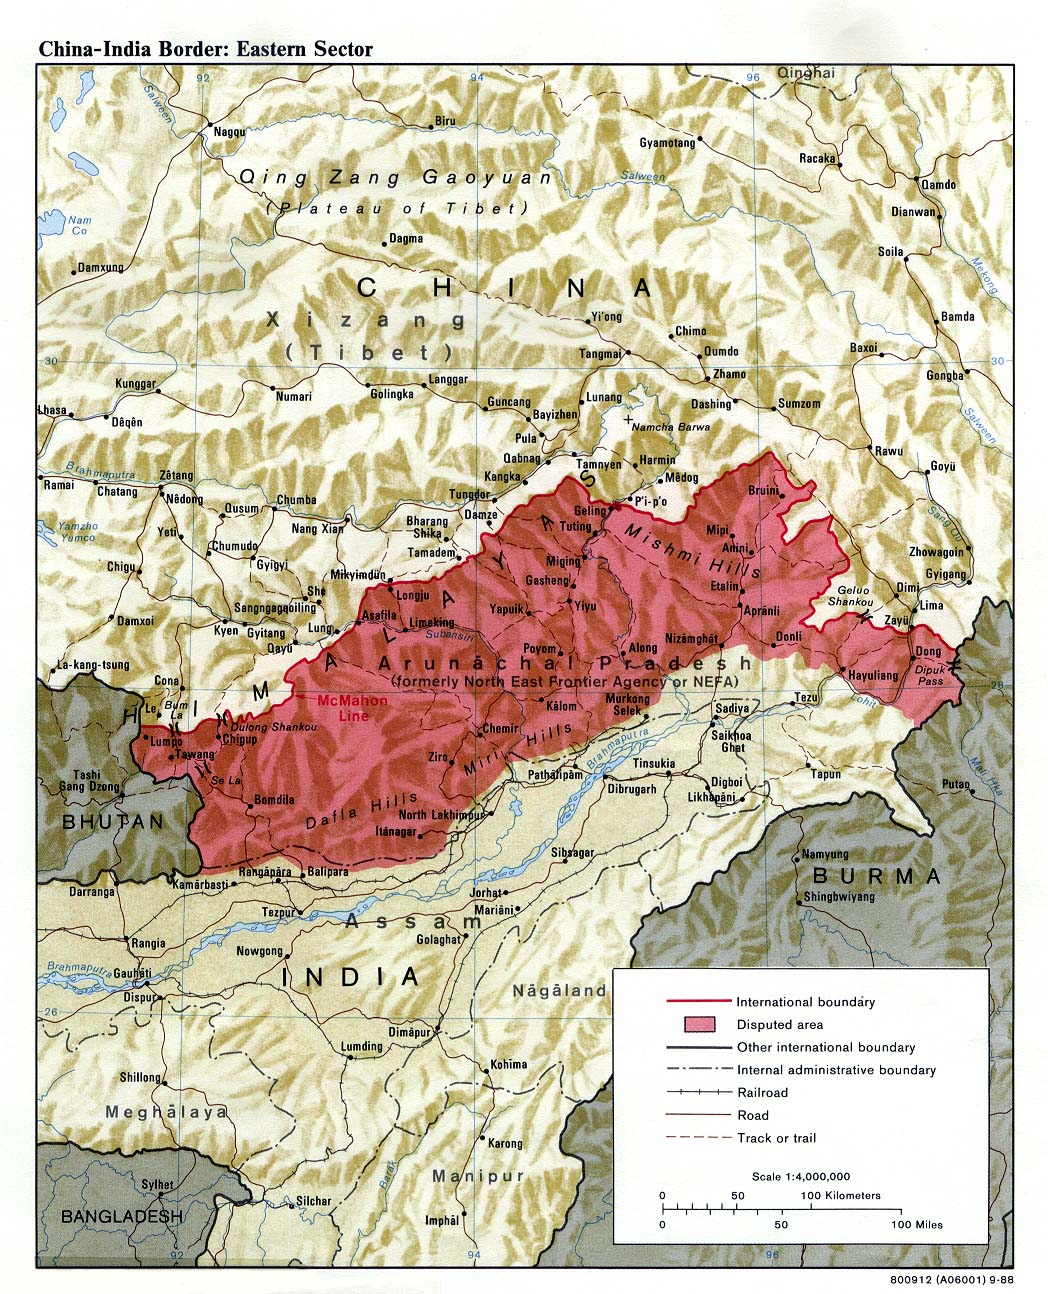 China - India Border Eastern Sector Map